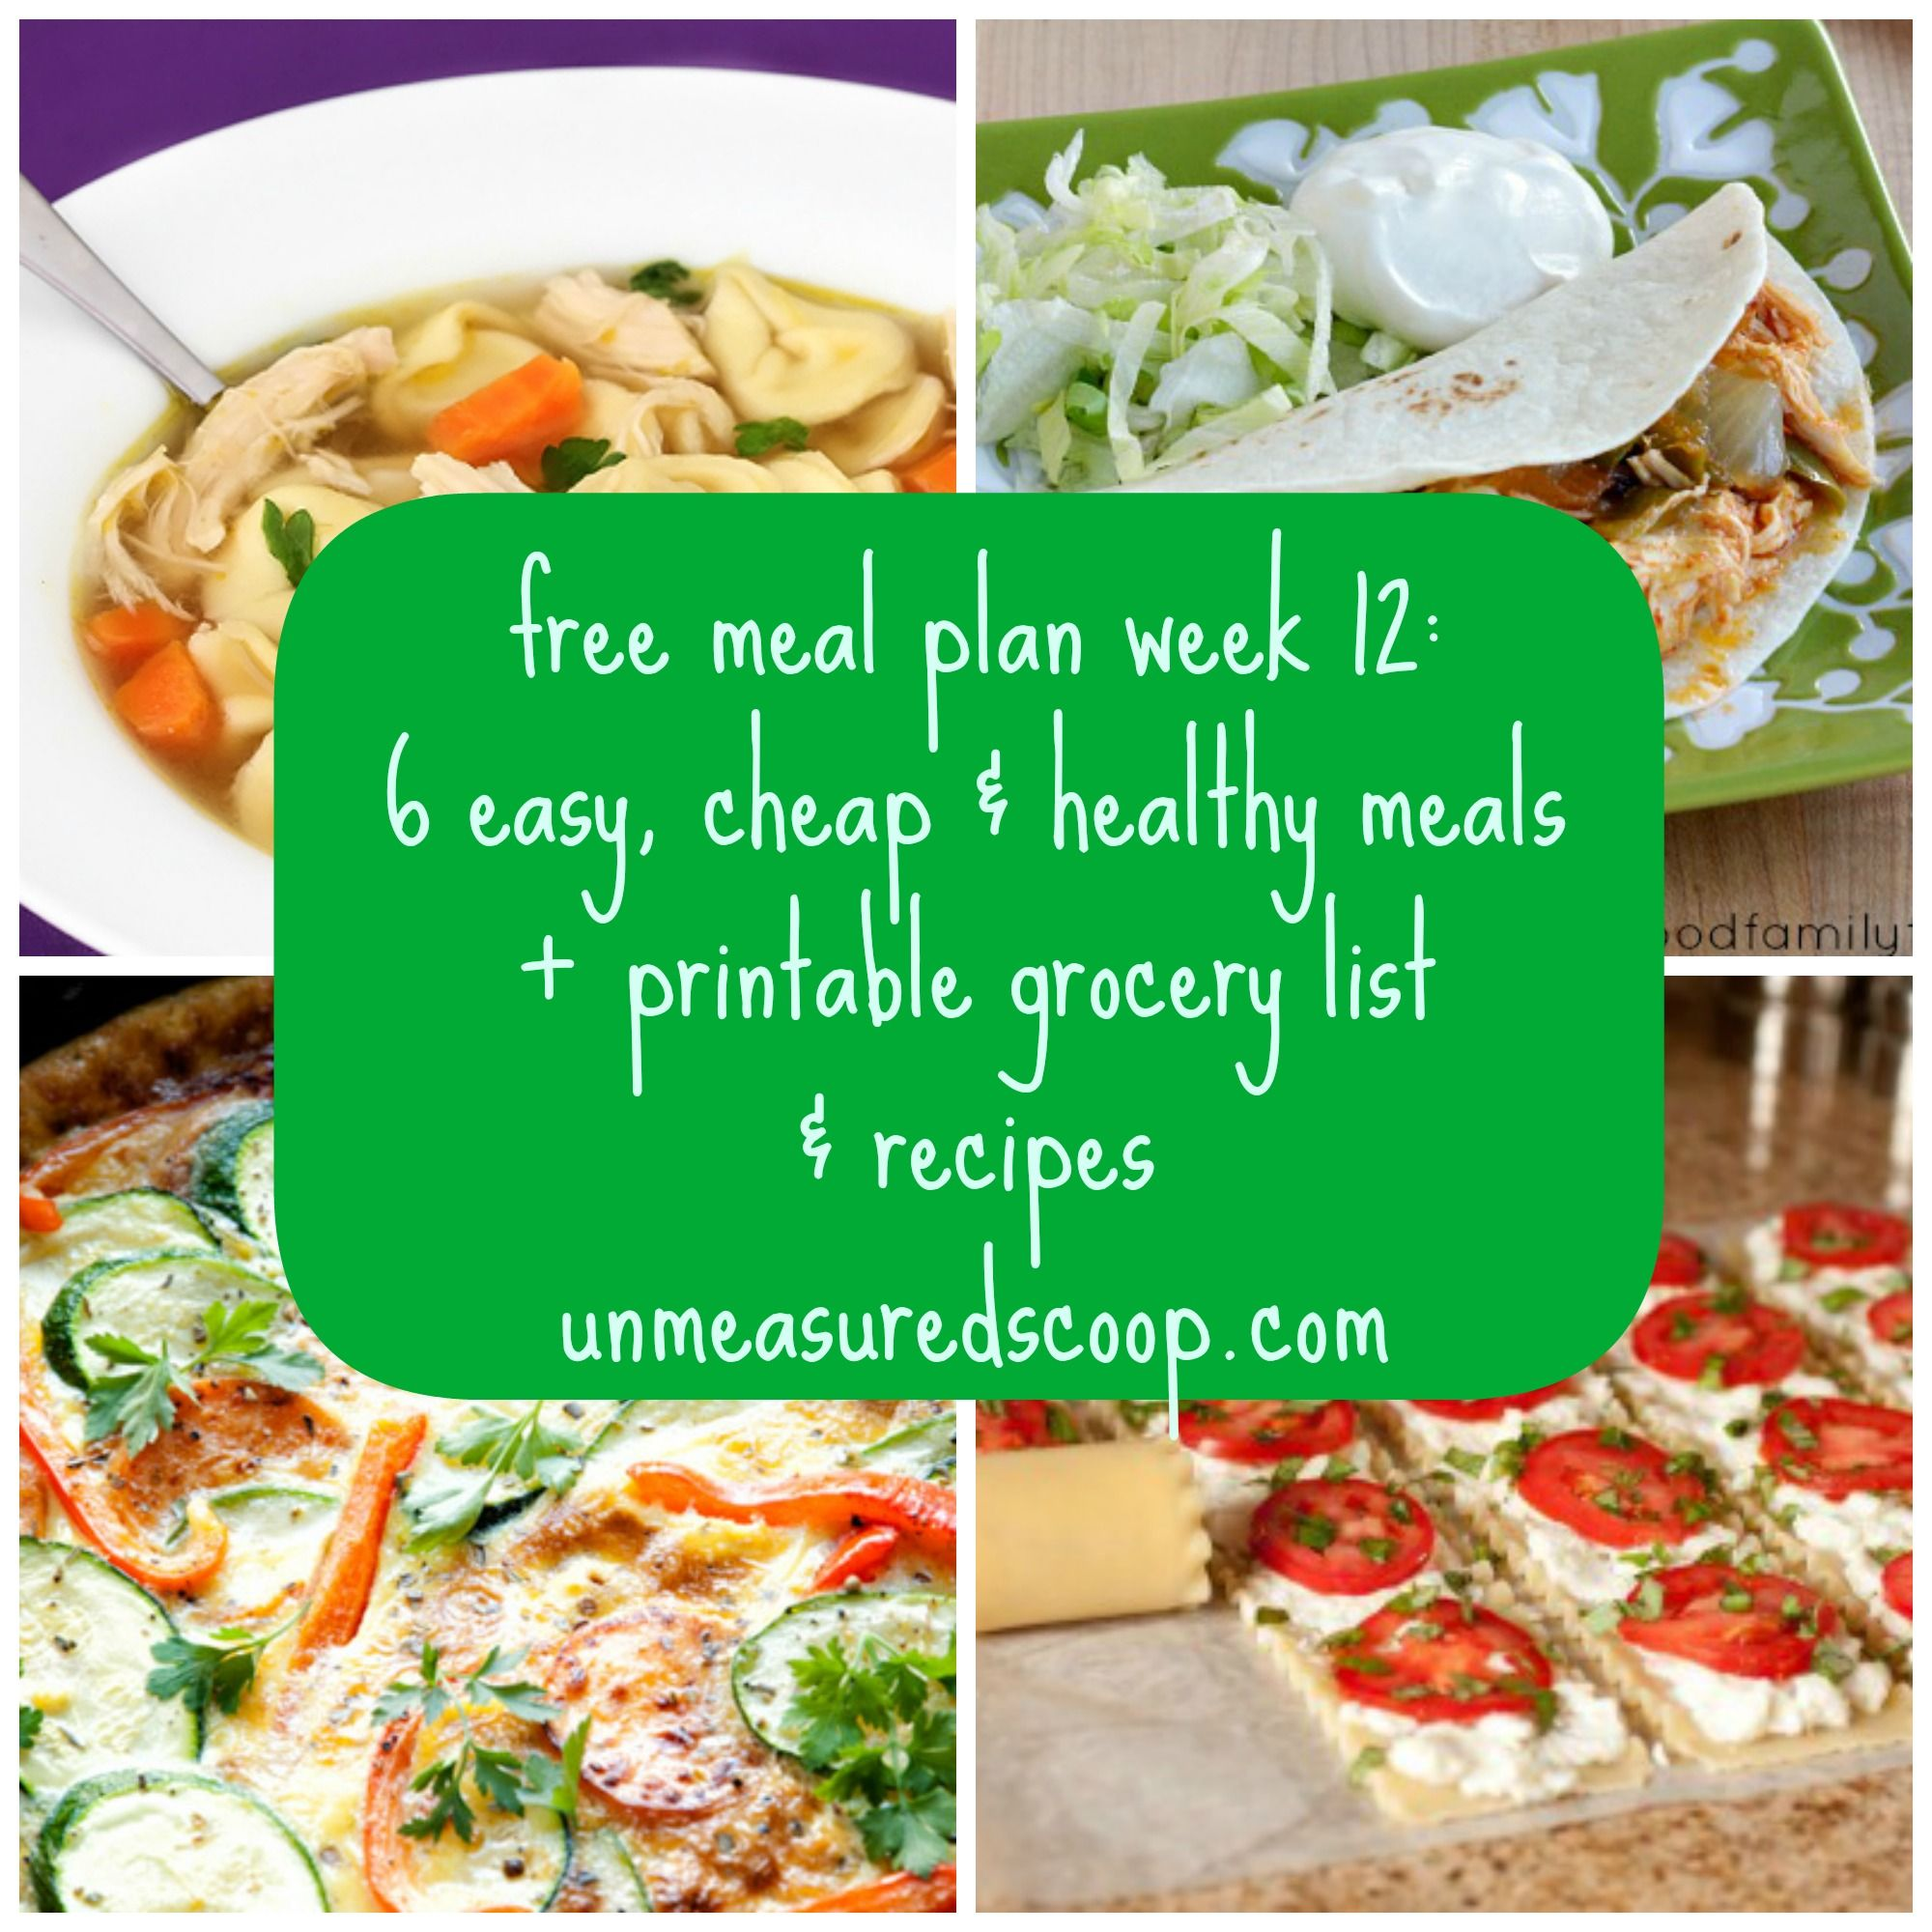 Free meal plan week 12 6 easy cheap healthy meals grocery list free meal plan week 12 6 easy cheap healthy meals grocery list forumfinder Choice Image